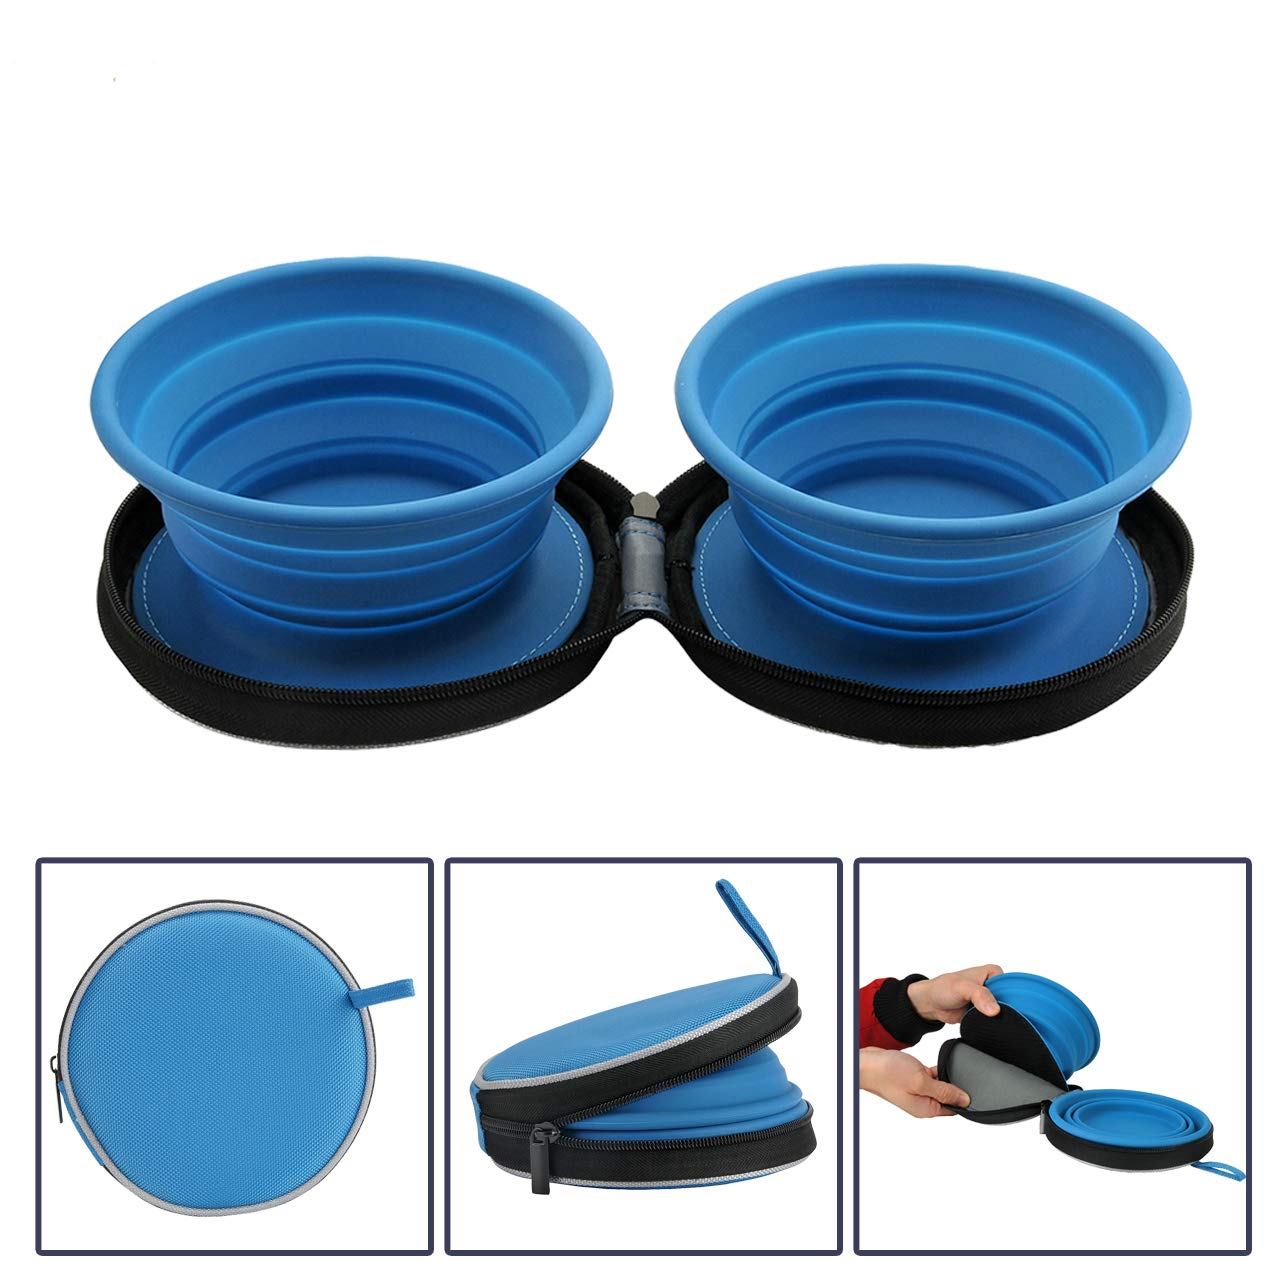 Mogoko Food-Grade Silicone Collapsible Dog Bowl Set,BPA­ Free Expandable Pet Food Water Feeding Cup Dish with Zipper Pouch for Outdoors Travel Camping Hiking(2 Pack) by Mogoko